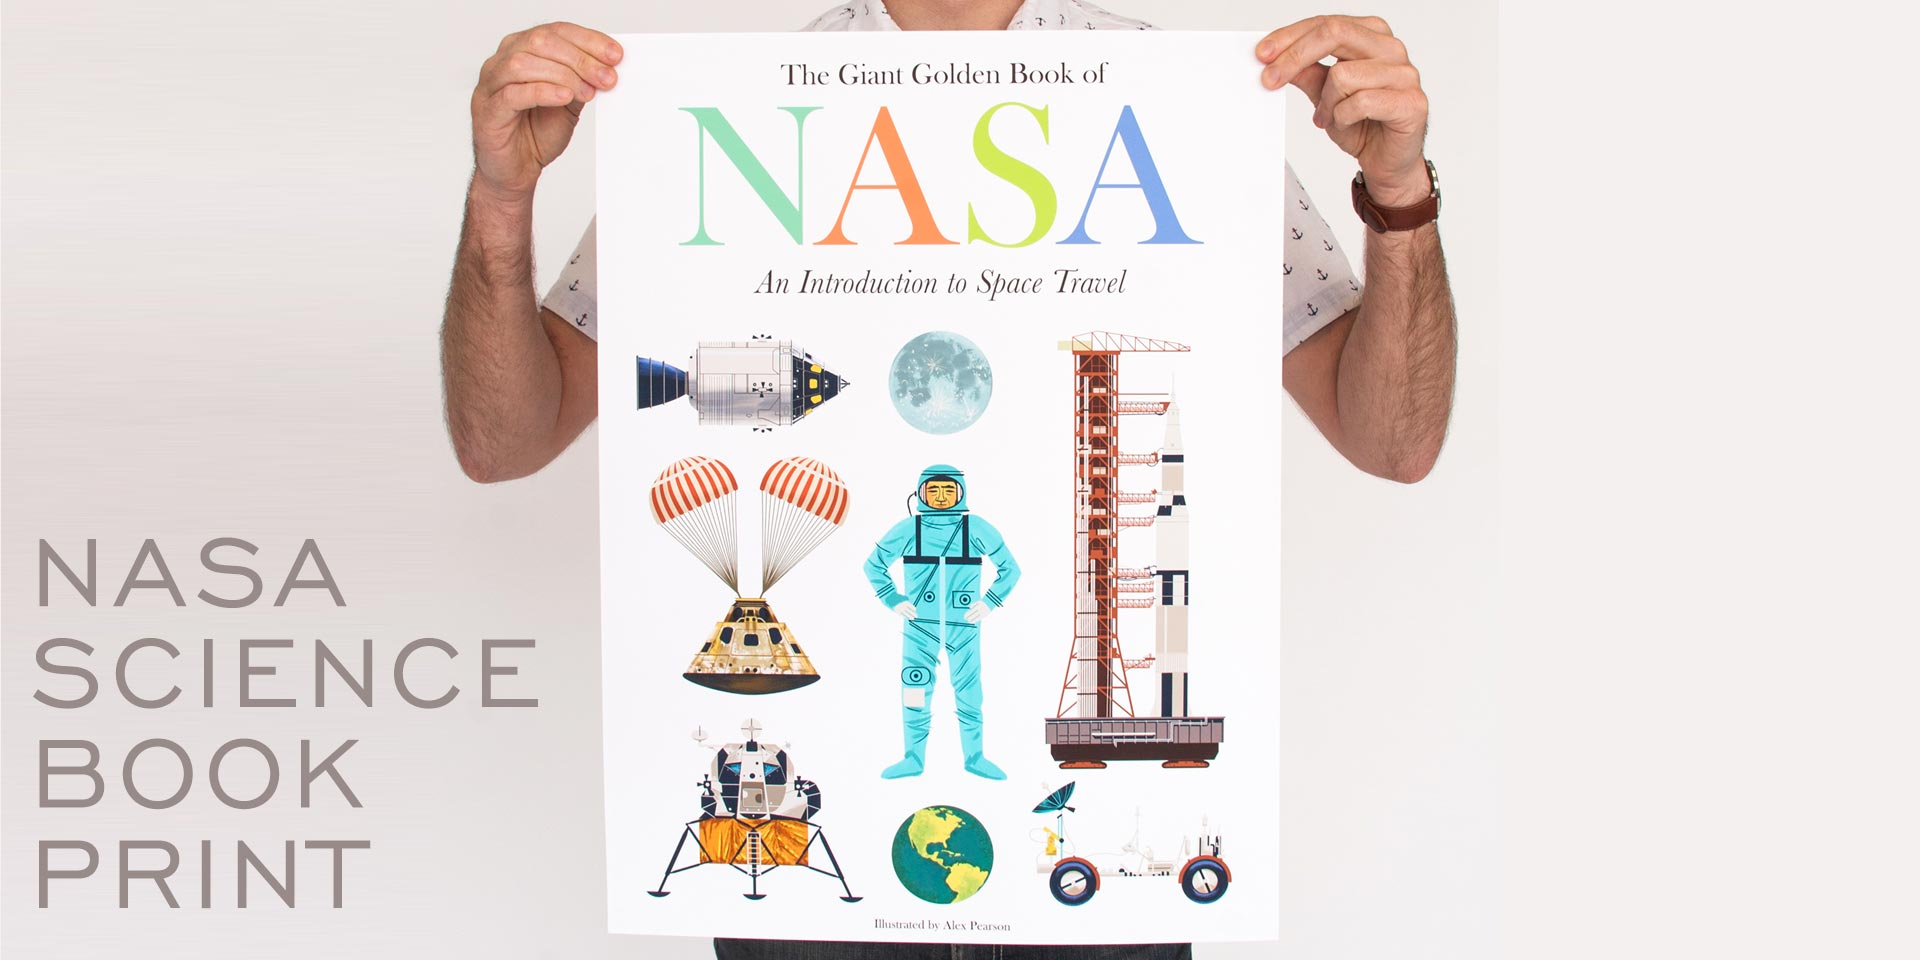 NASA-golden-book-slide.jpg